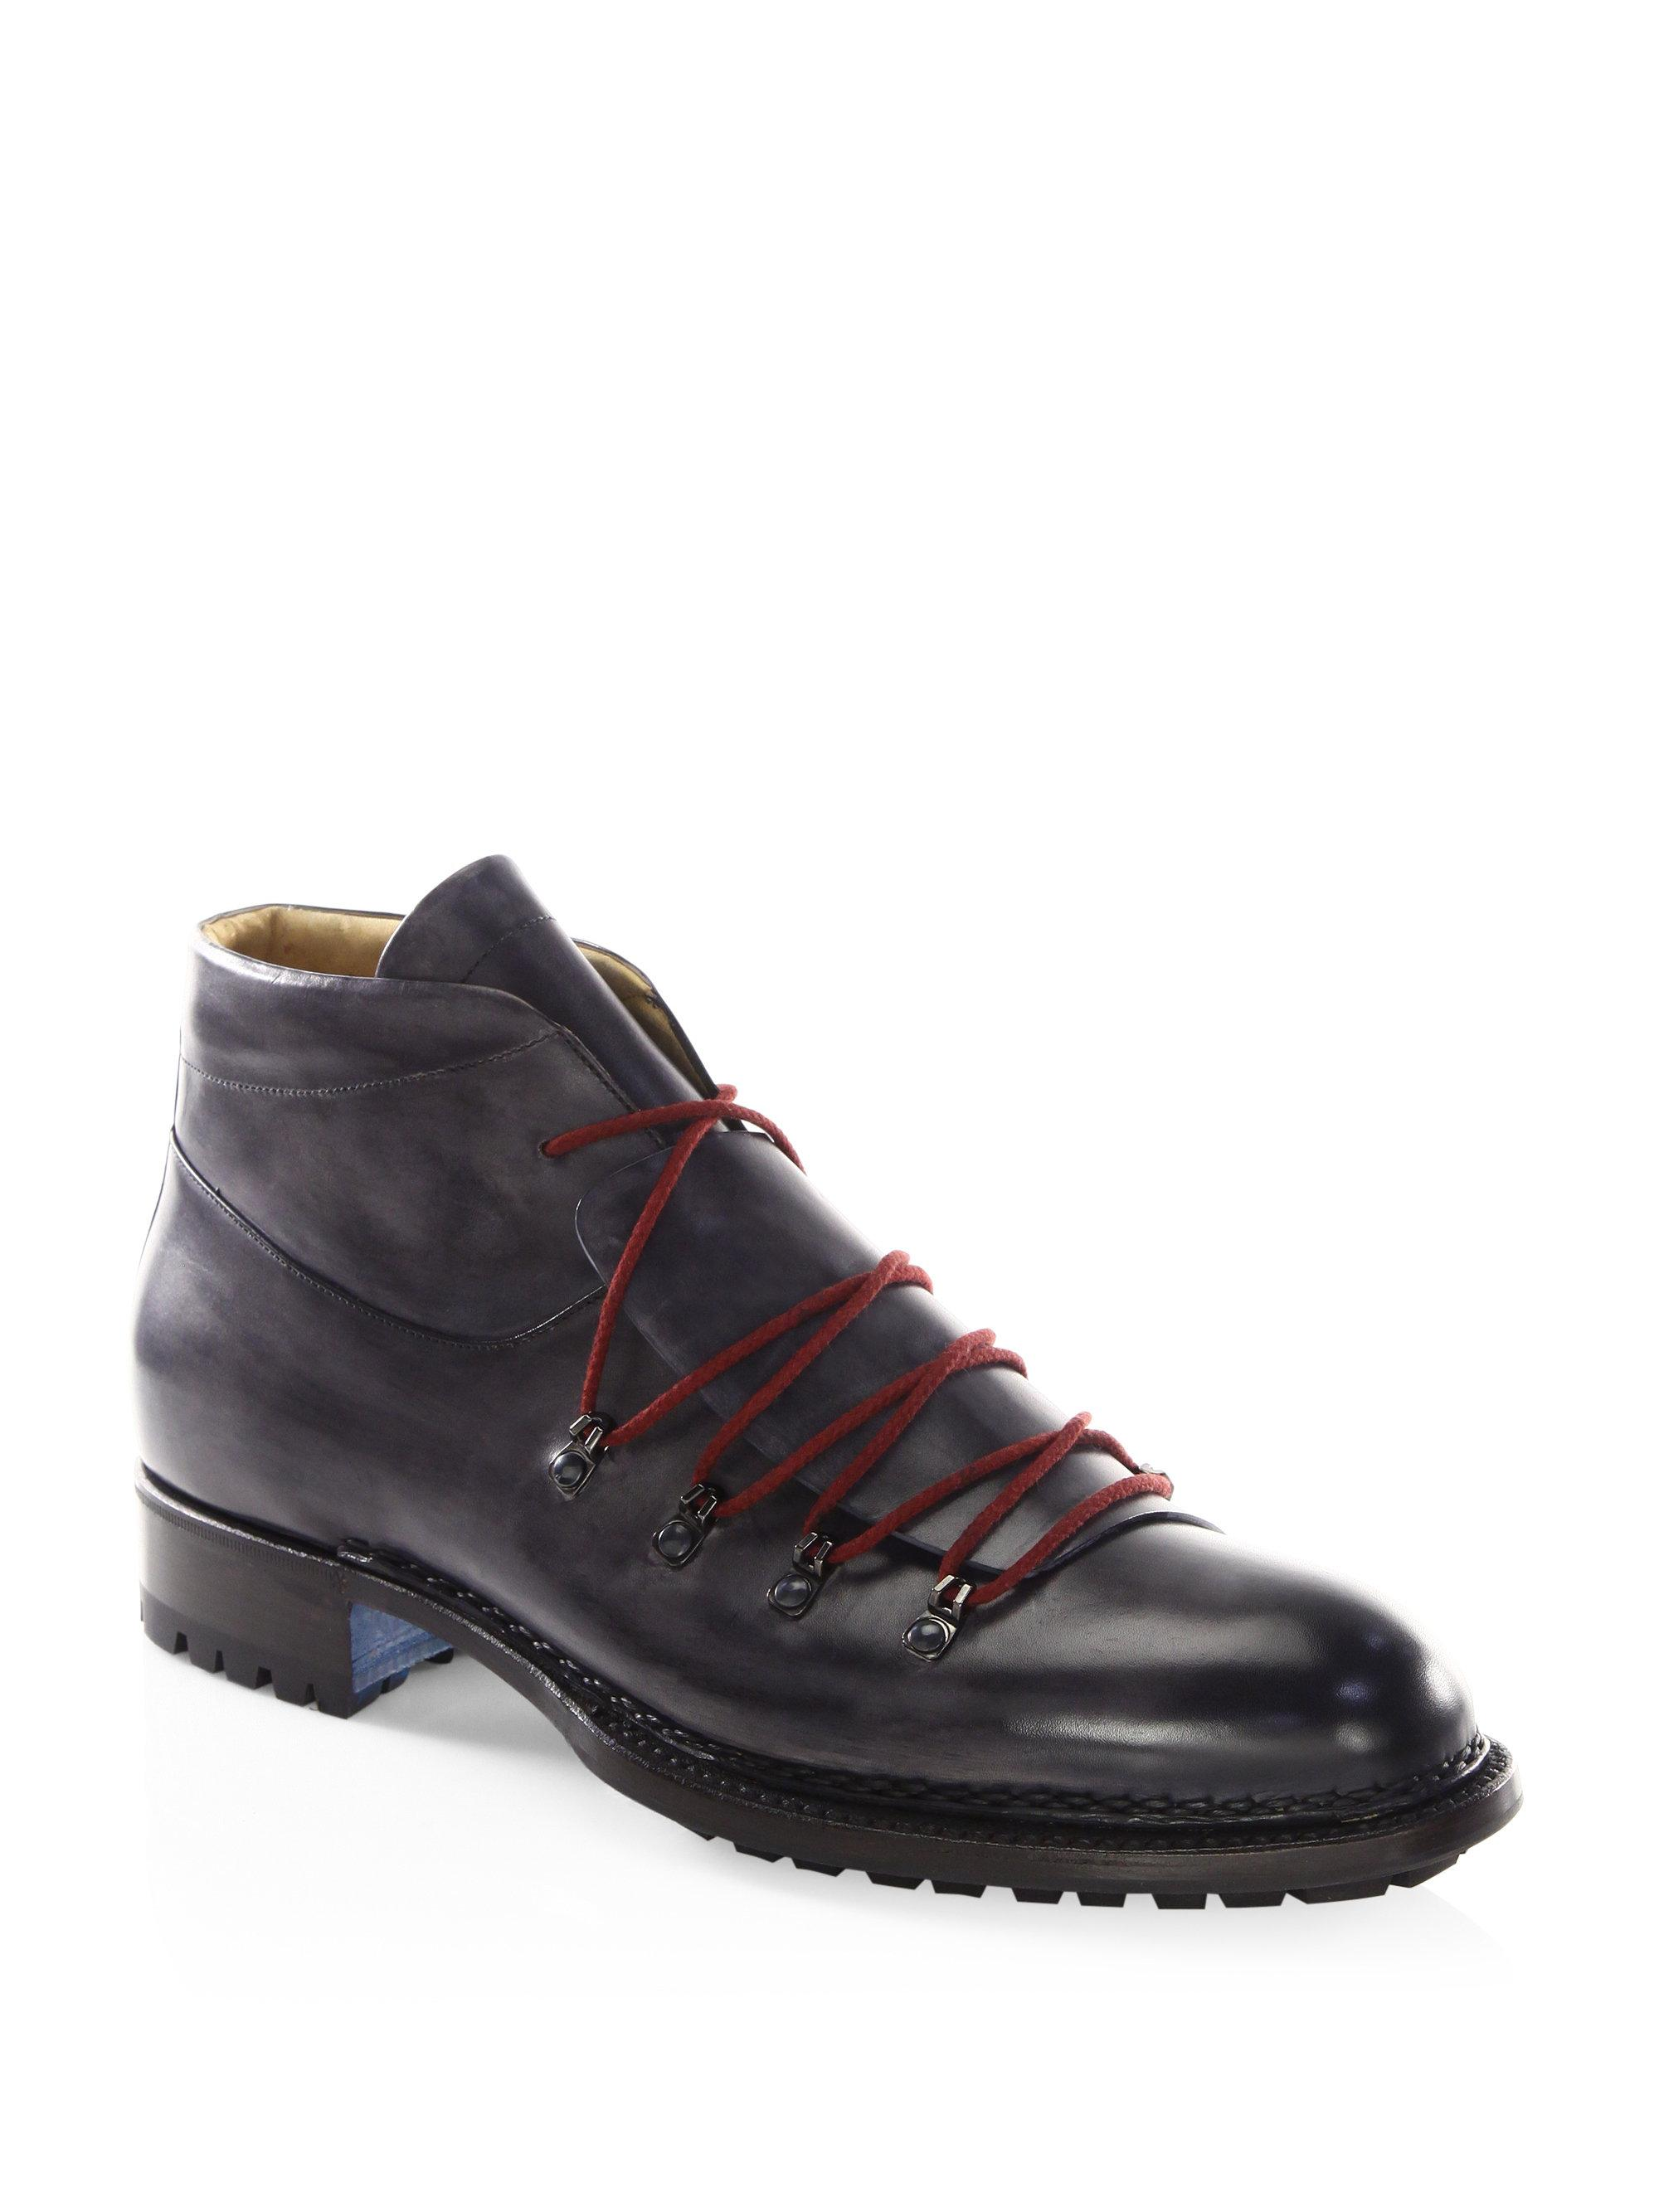 Sutor Mantellassi Boris Master Leather Hiking Boot Roccia Mens Shoes Online new sale